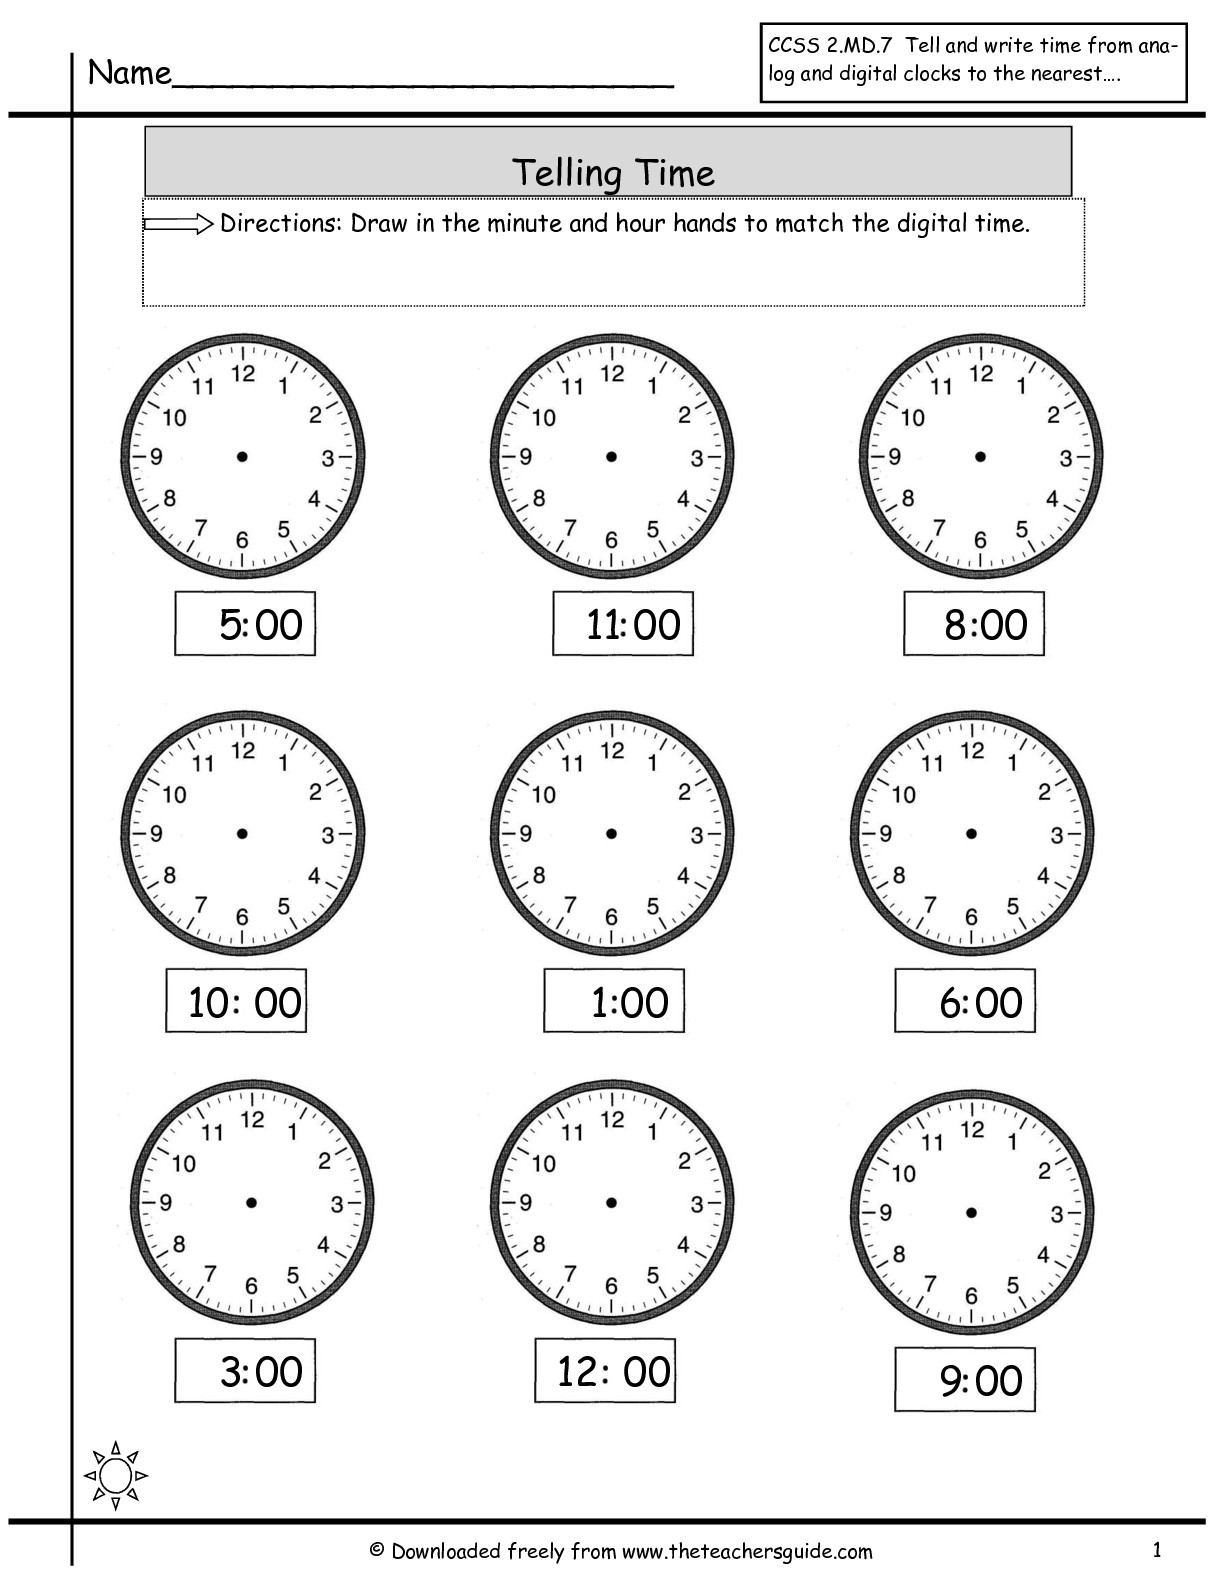 Telling Time Worksheets From The Teacher's Guide - Free Printable Telling Time Worksheets